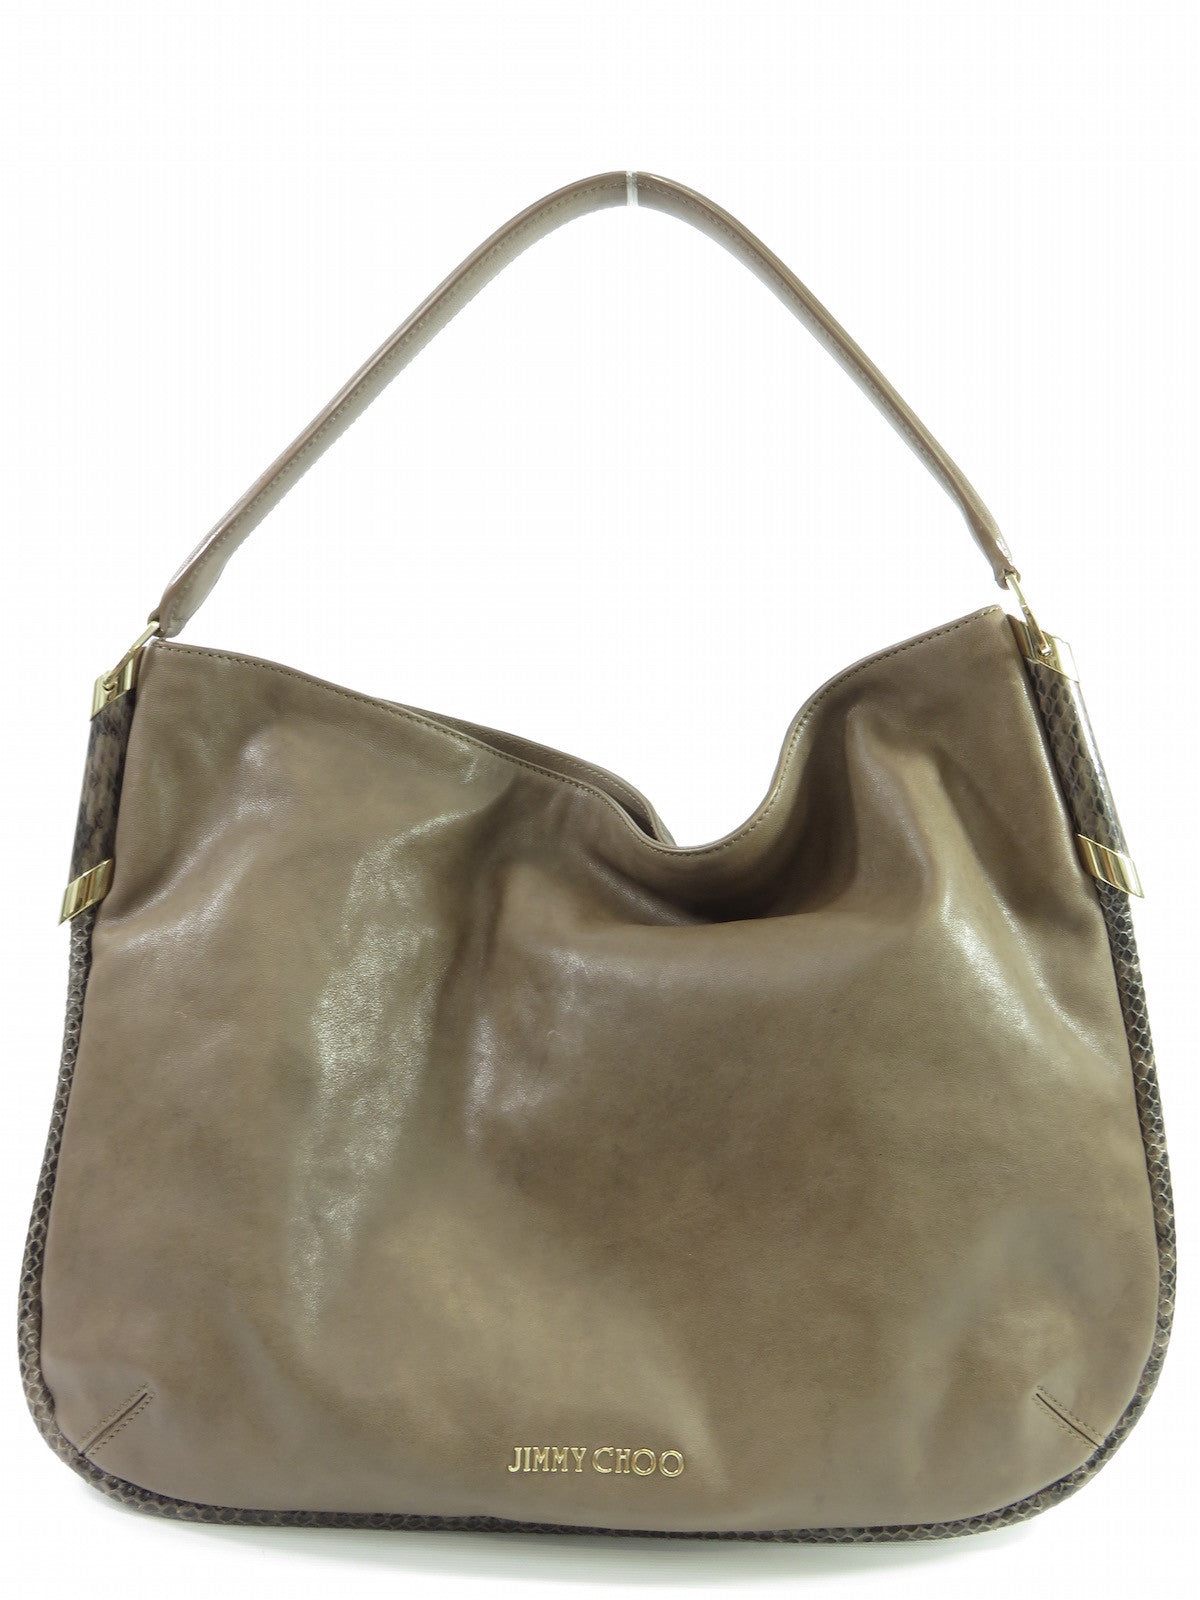 JIMMY CHOO ZOE Mink Brown Leather Hobo Snakeskin Trim Purse Bag Shopper f8206694a8d34